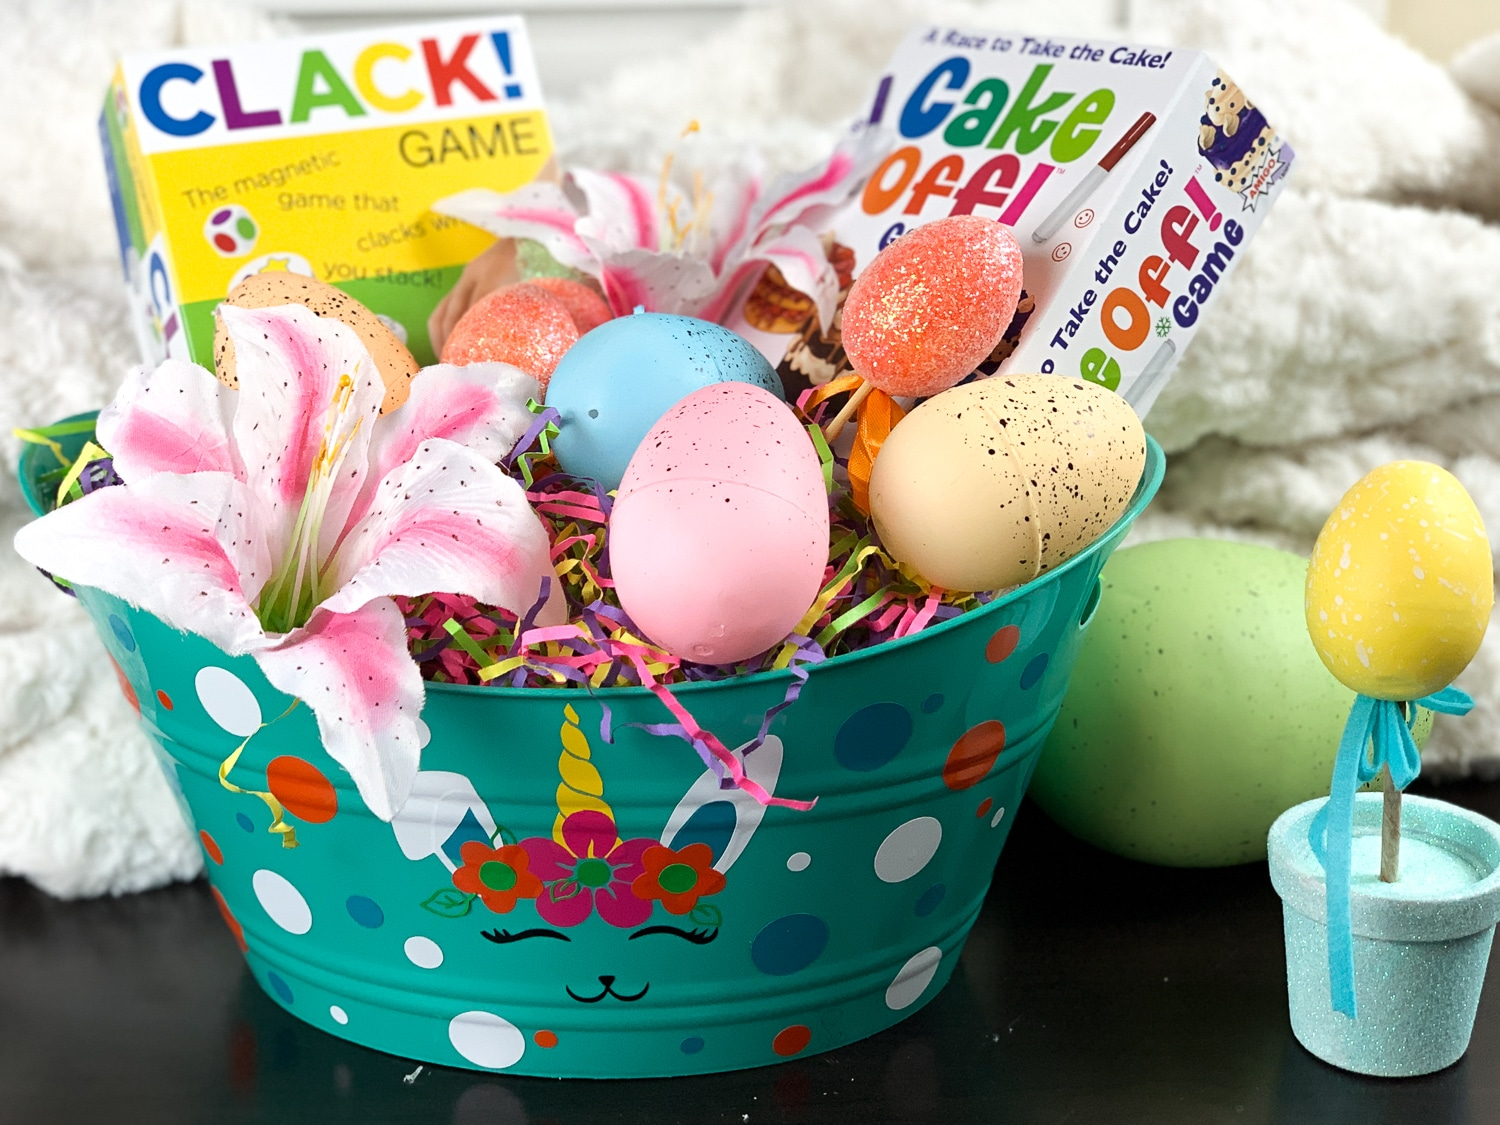 If you are looking for Easter basket ideas using your Cricutyou are in the right place. This DIY Easterbasket cost less than $5 to make. #unicorn #bunnicorn #freesvgfile #easter #diyeasterbasket